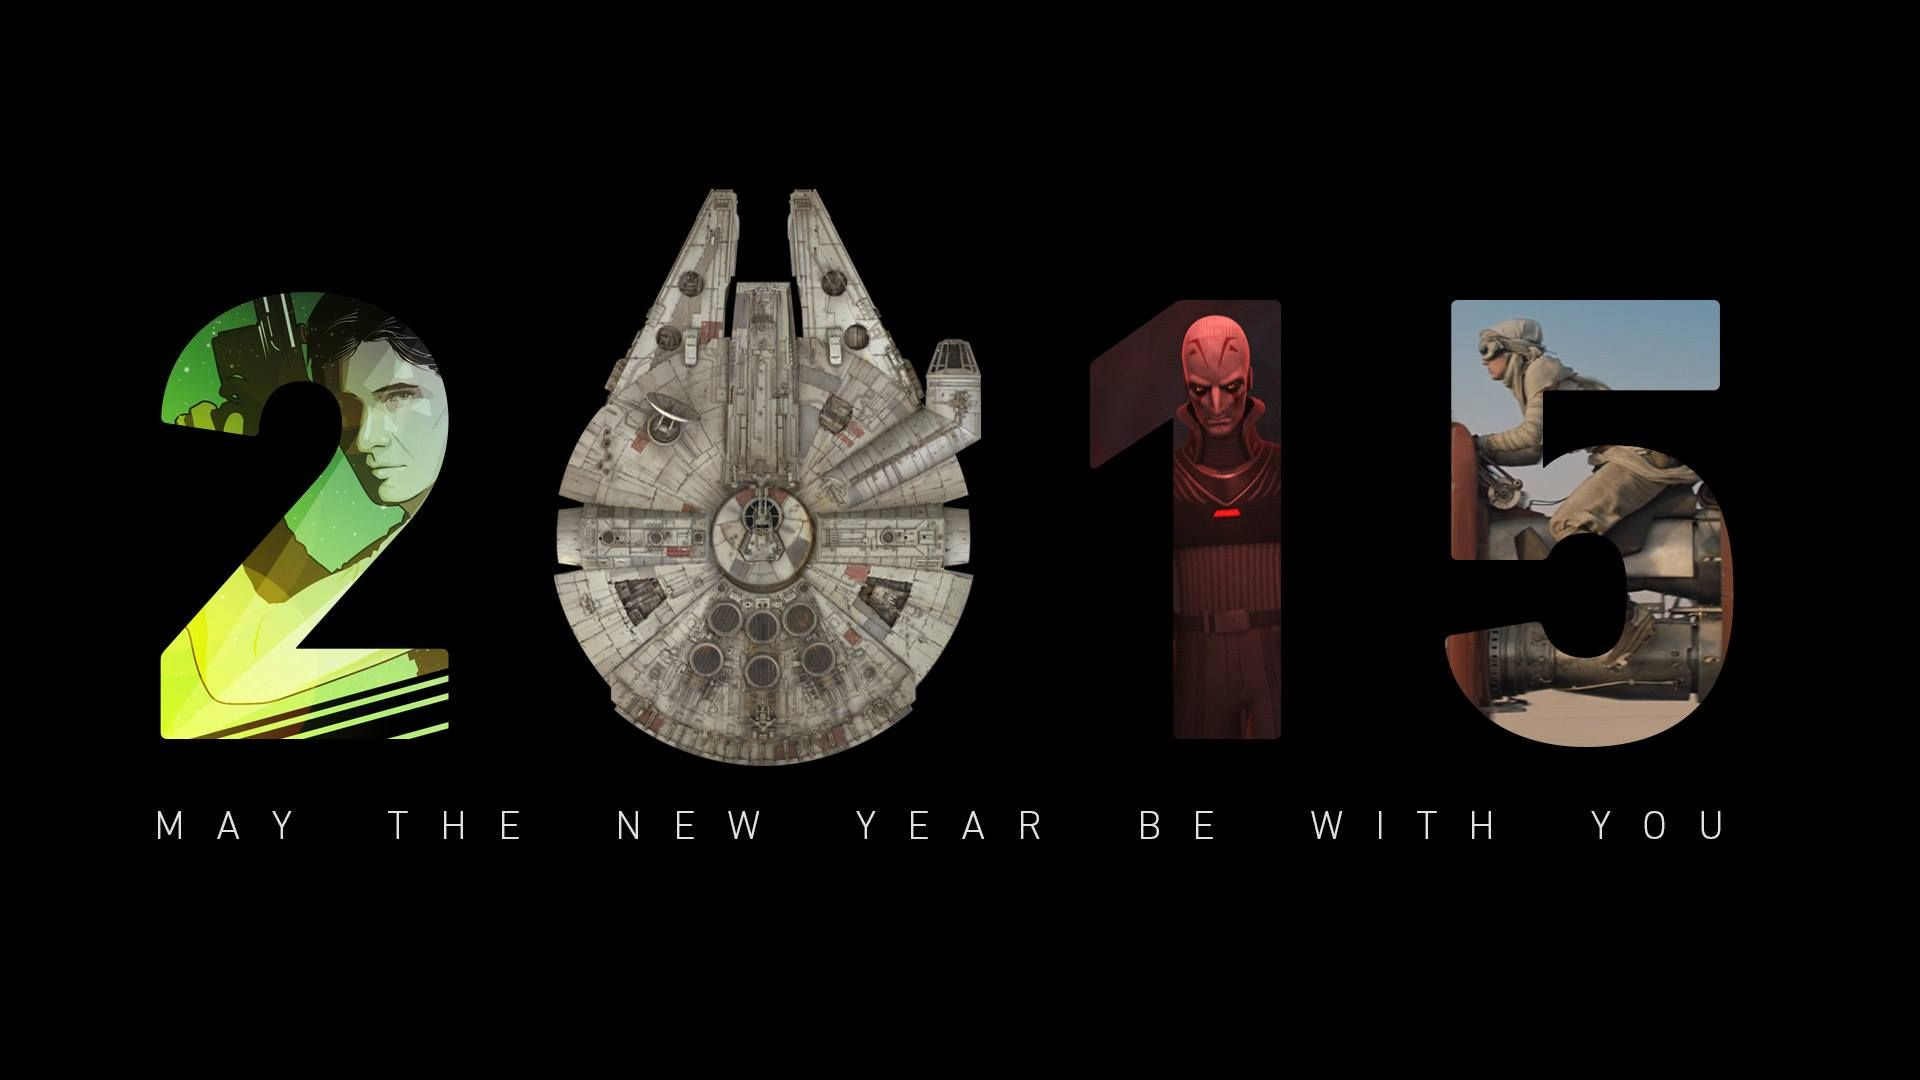 may the new year be with you. star wars 2015 poster | new year and